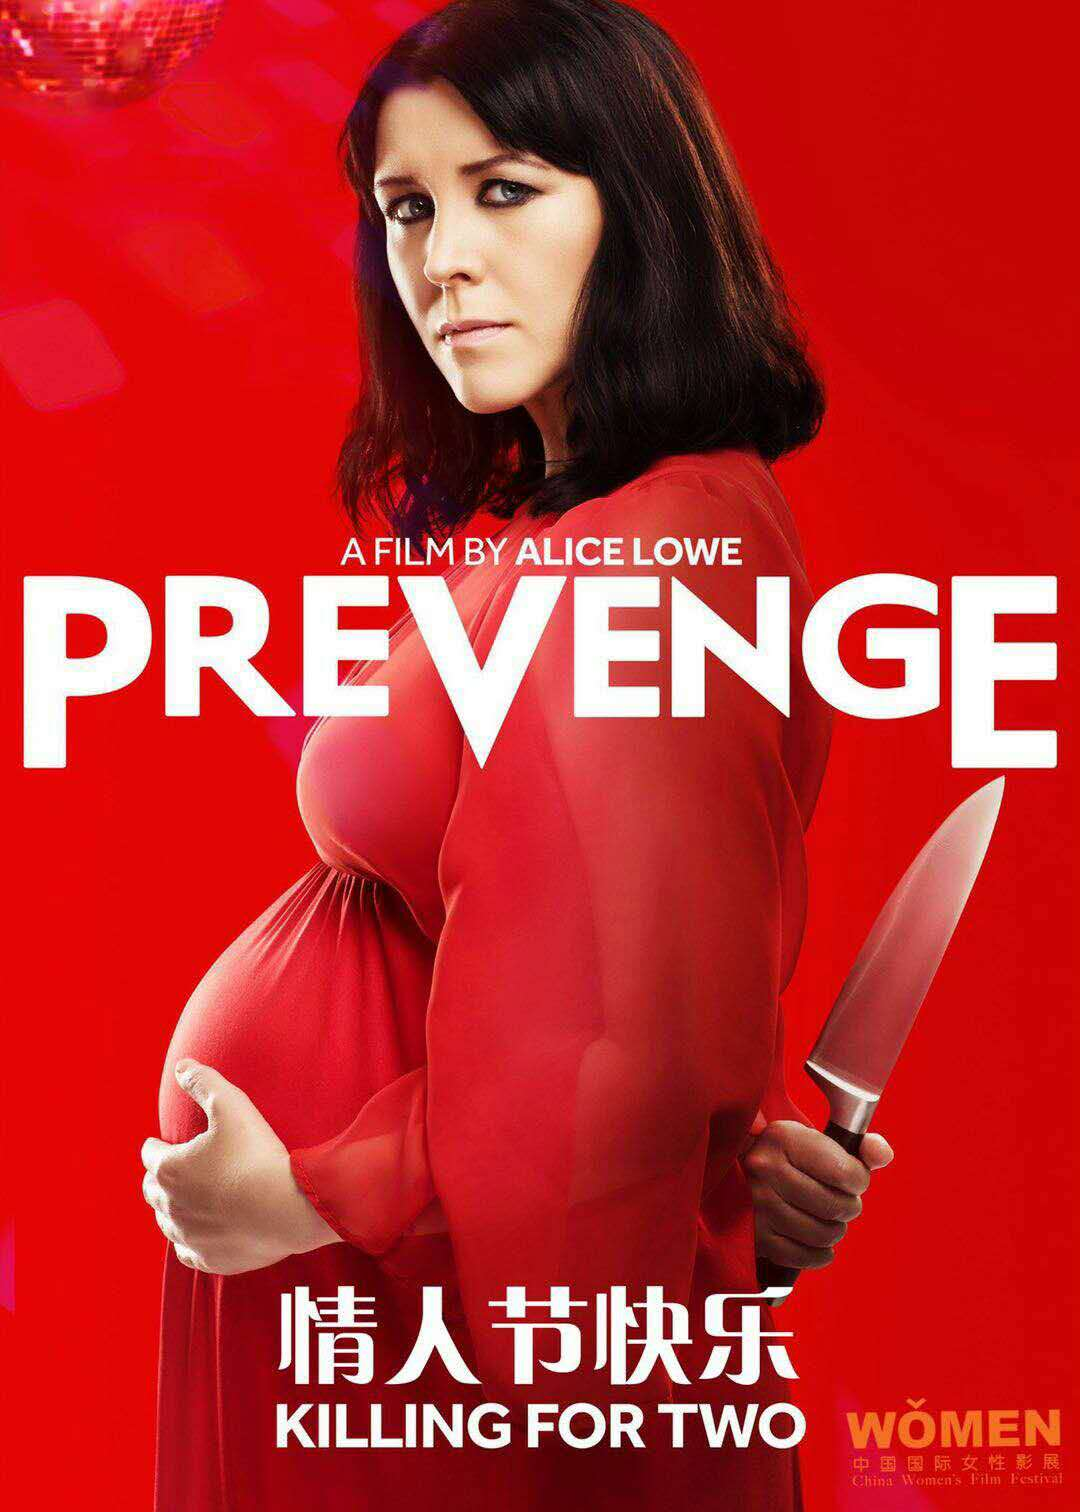 Prevenge     Widow Ruth is seven months pregnant when, believing herself to be guided by her unborn baby, she embarks on a homicidal rampage...  Read More